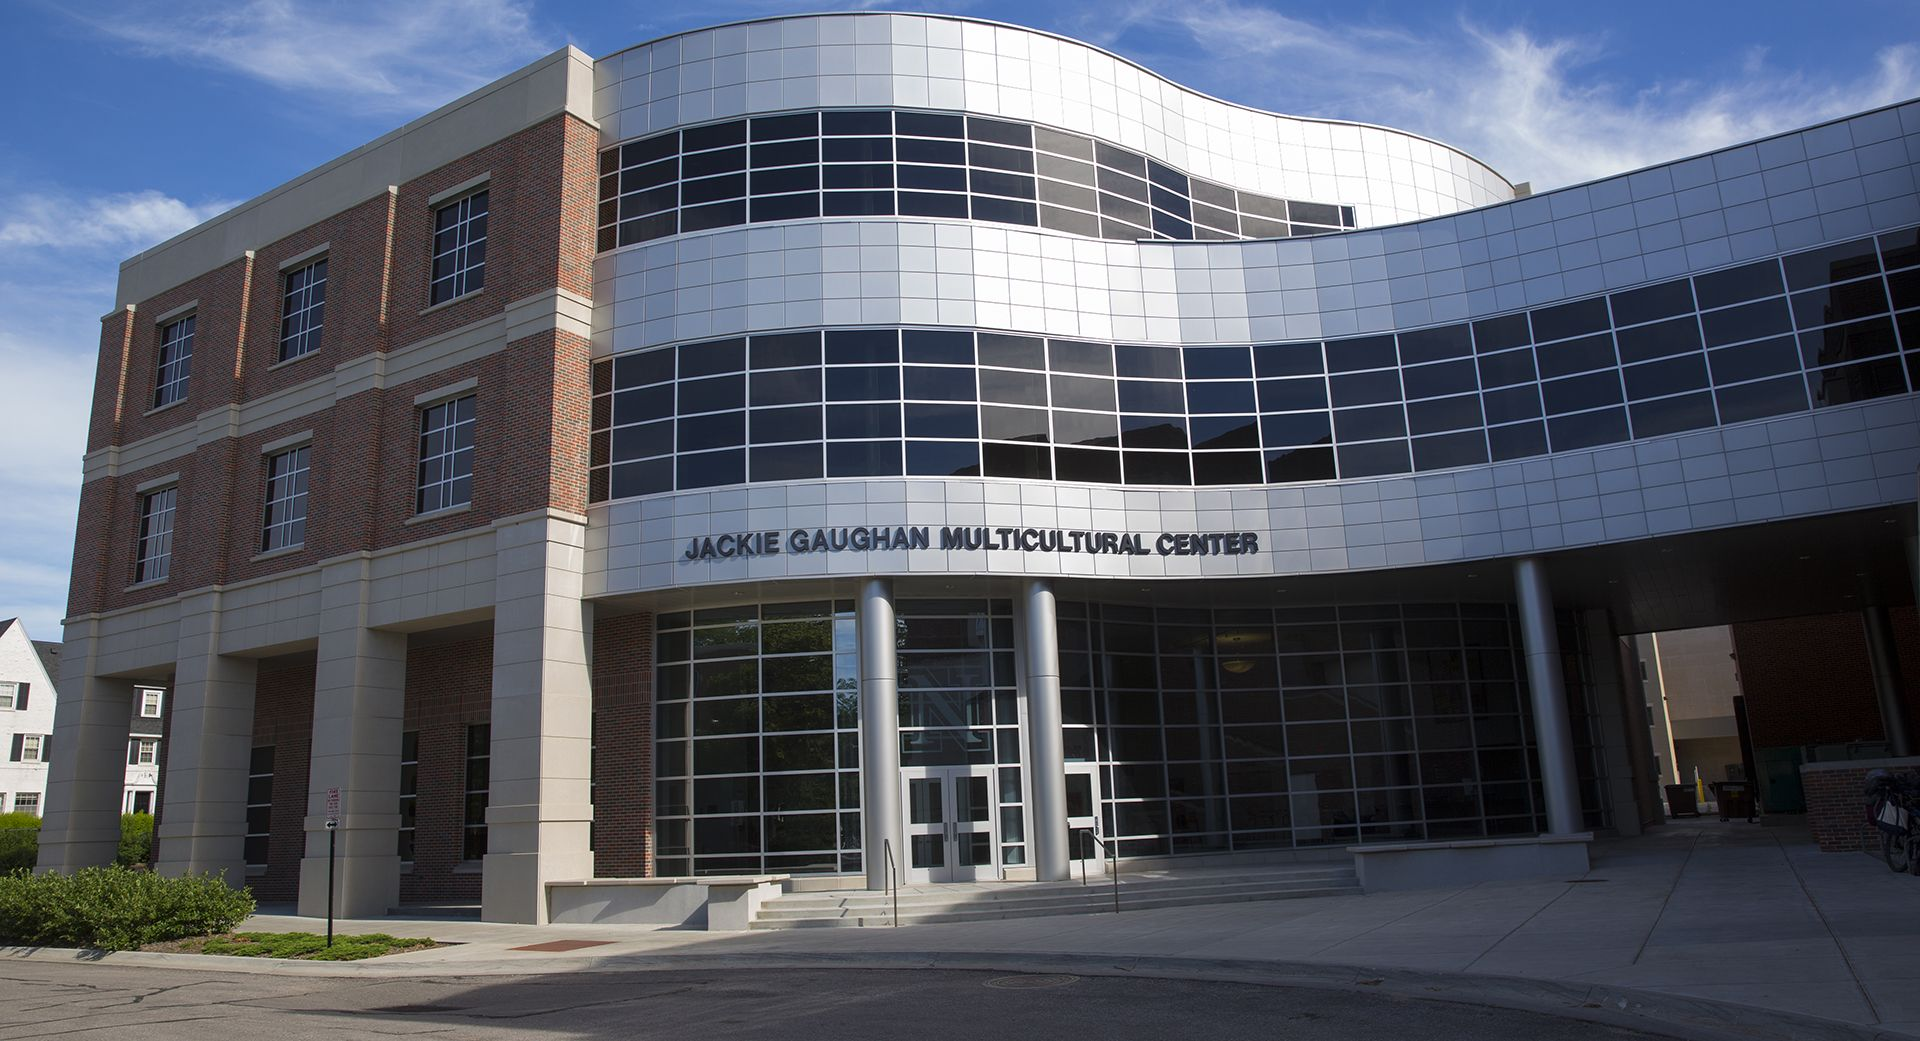 Exterior building image of Jackie Gaughn Center, awarded LEED silver certification.